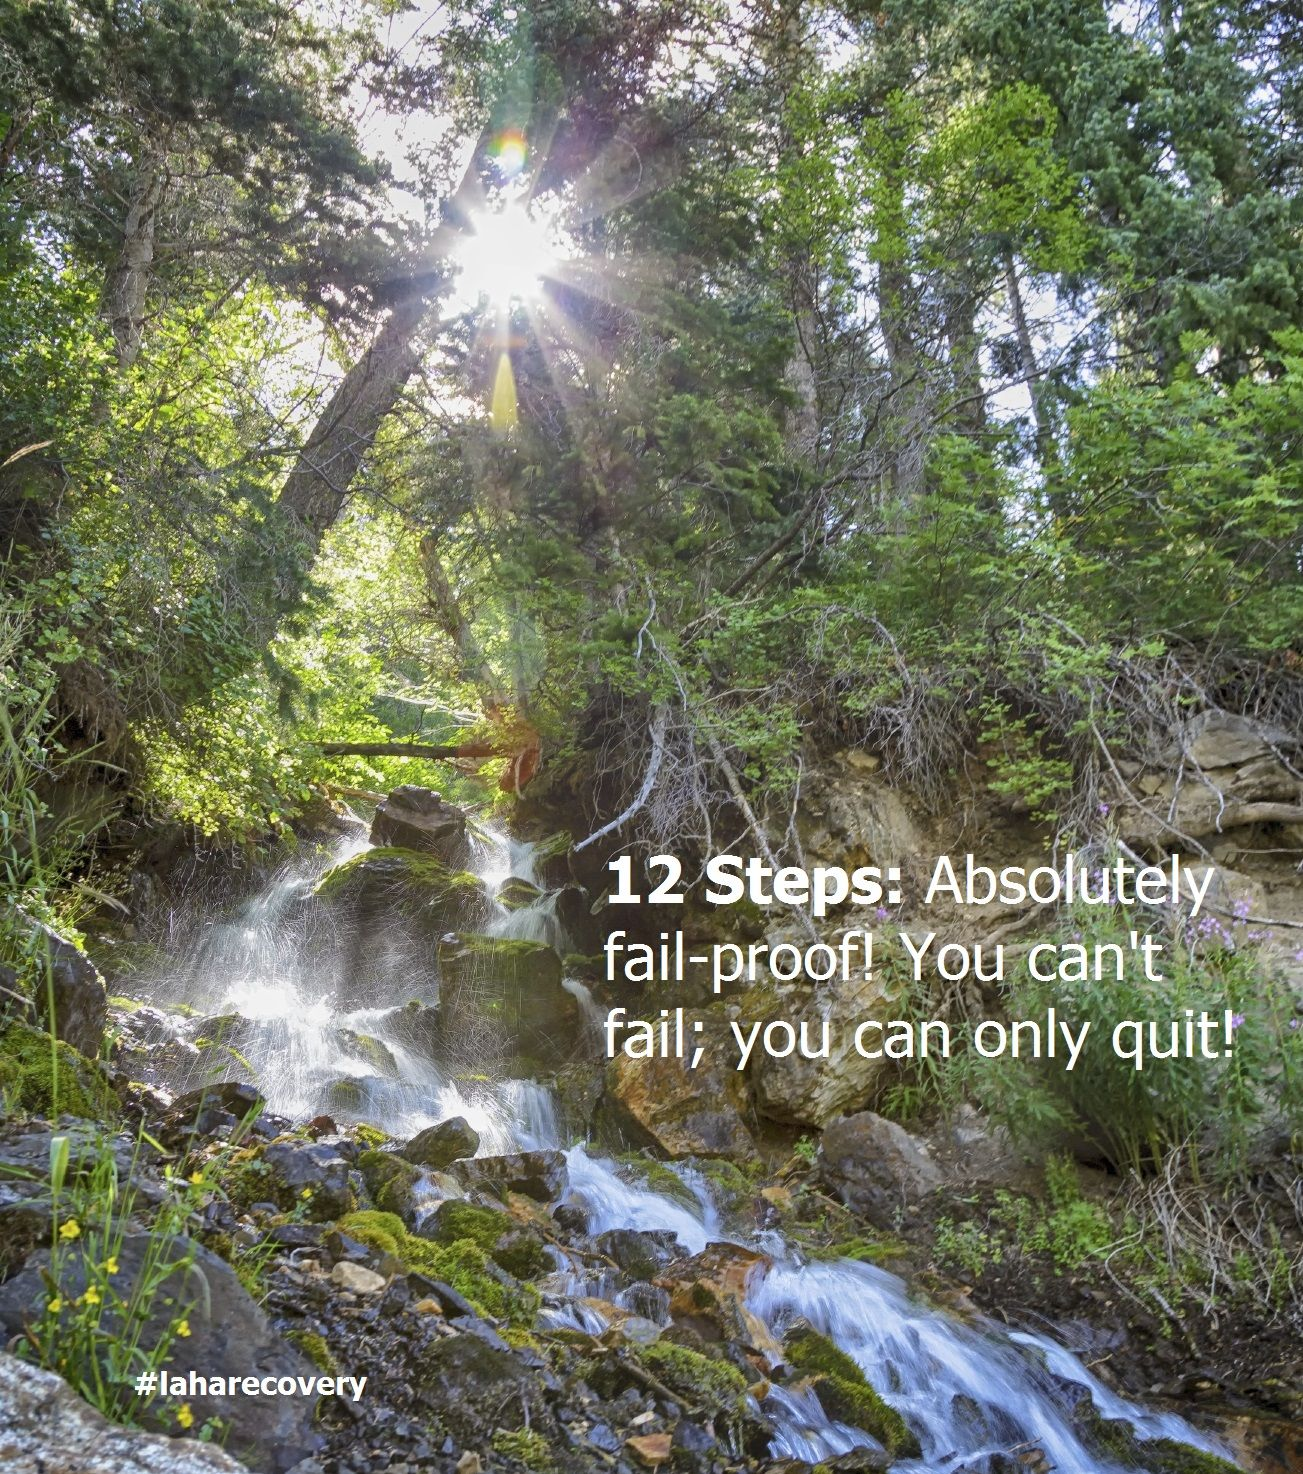 12 Steps Absolutely failproof! You can't fail; you can